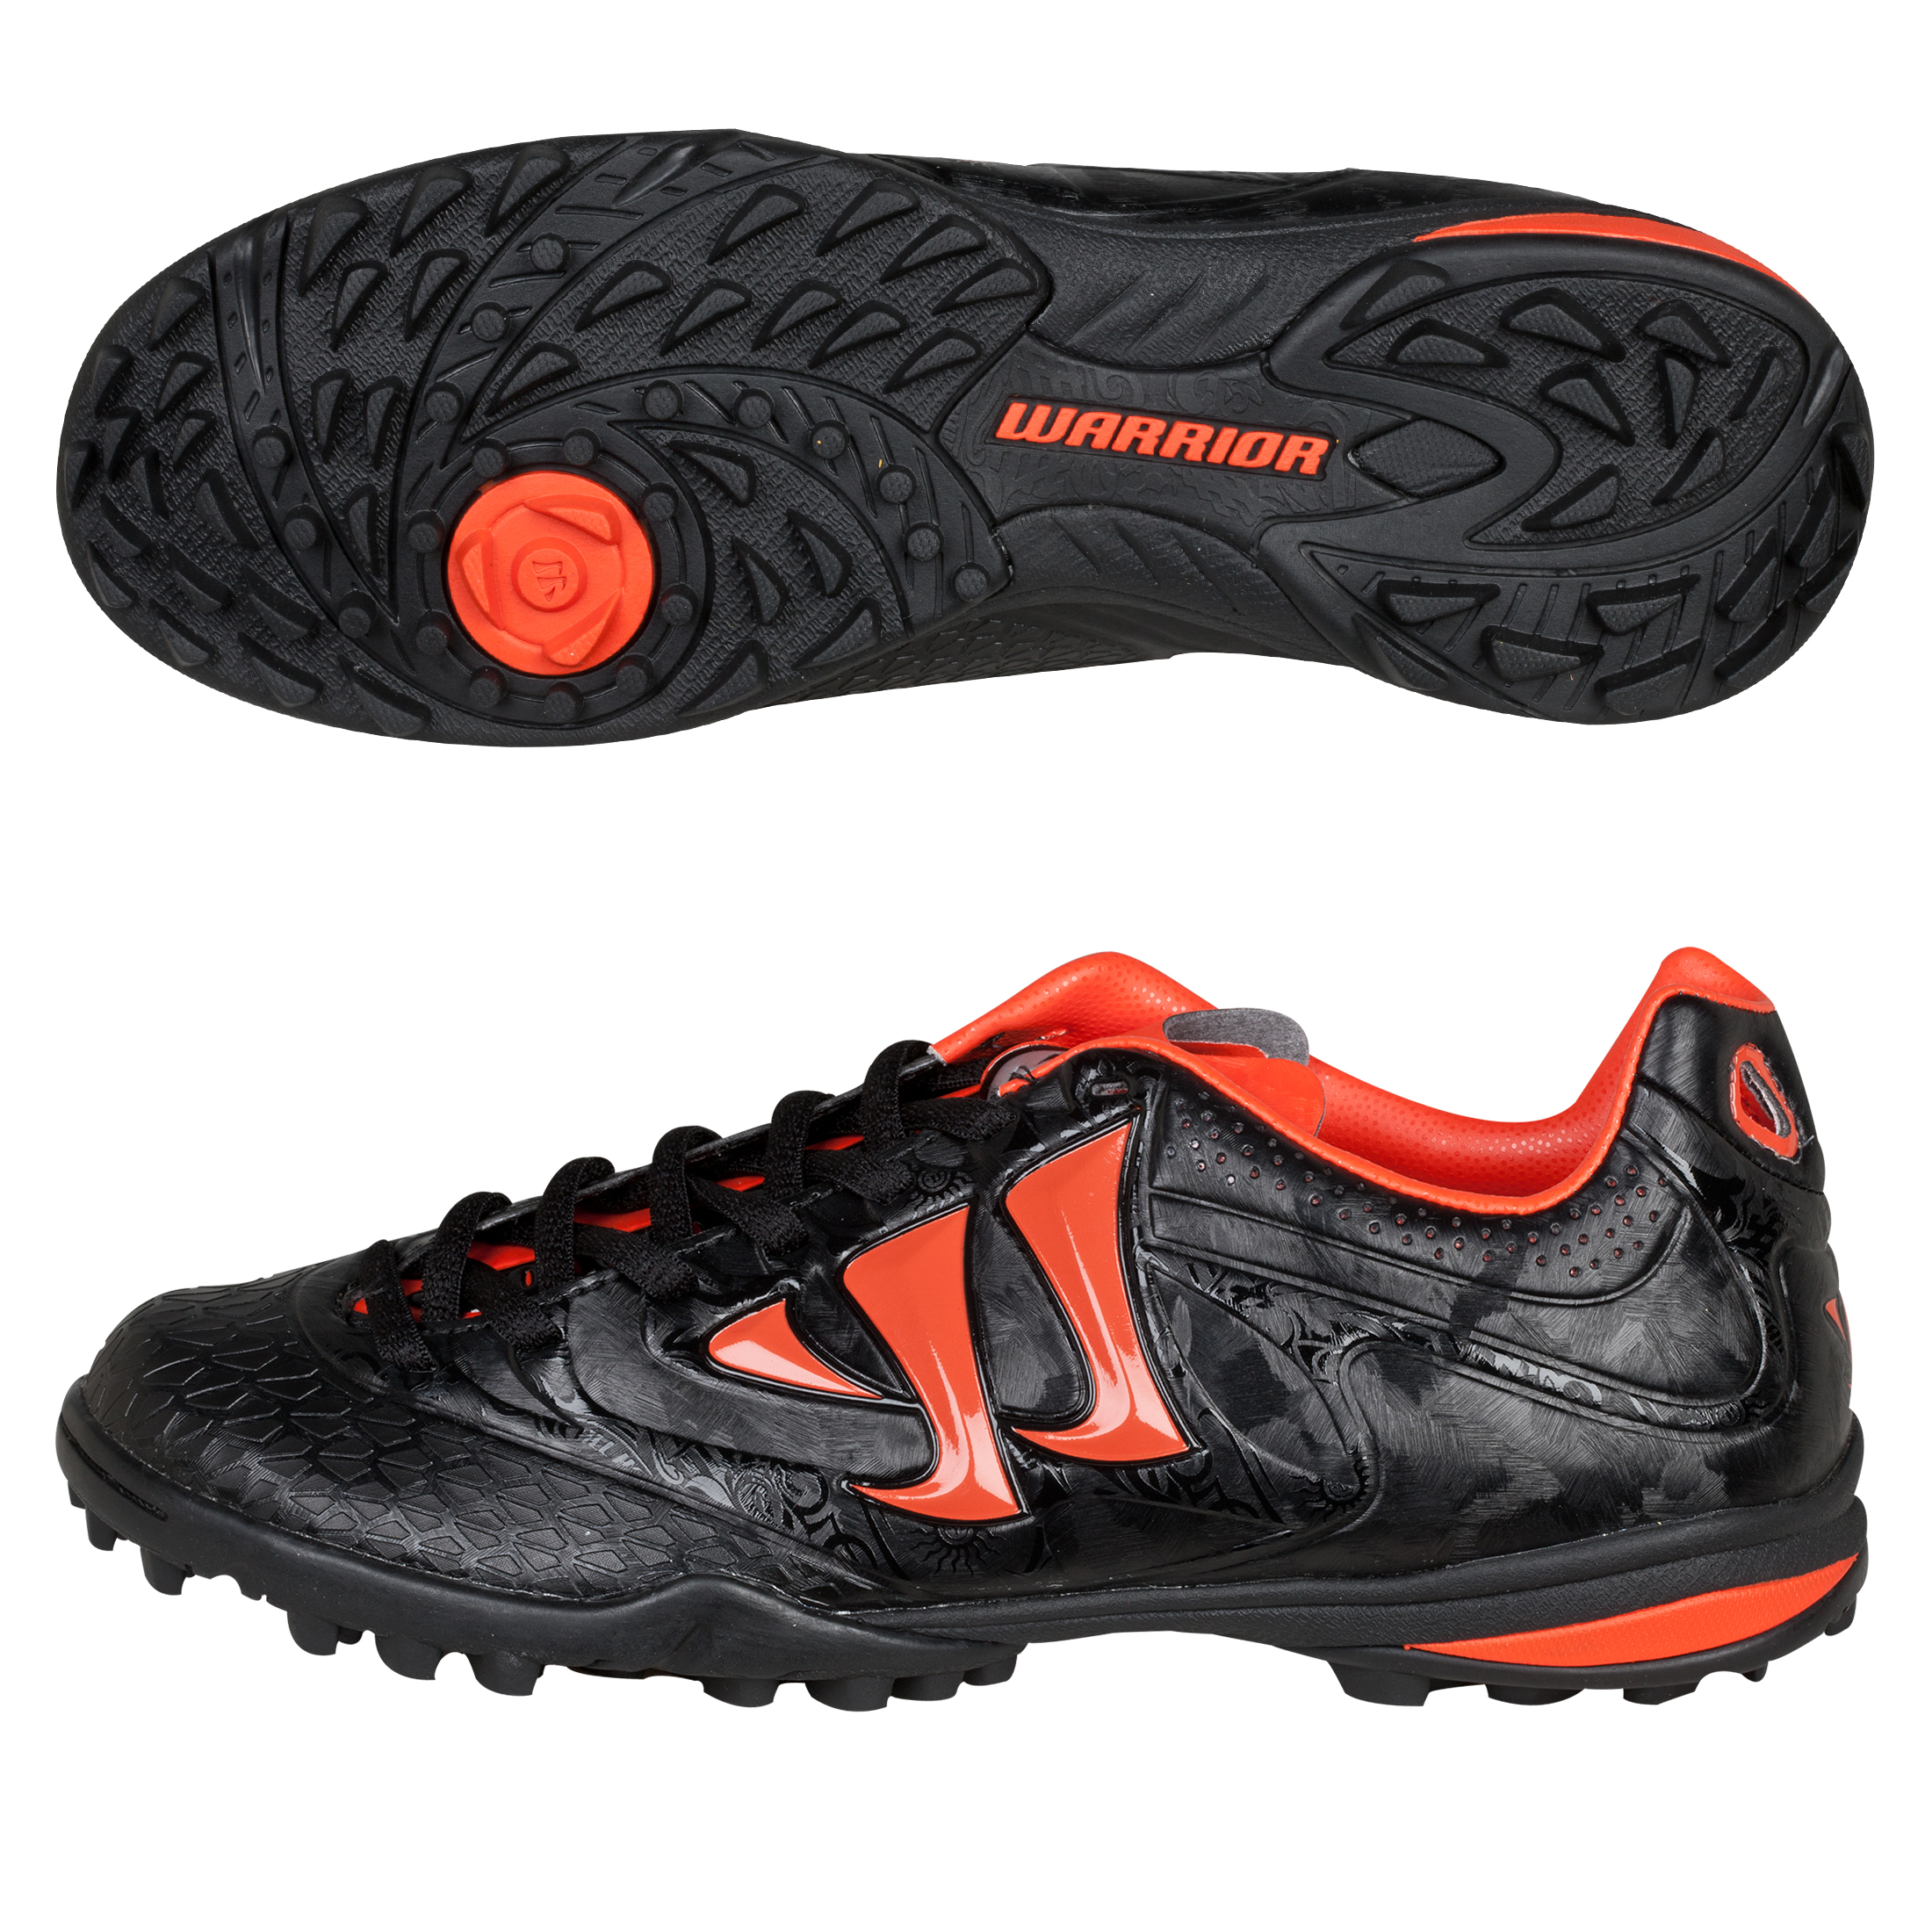 Warrior Sports Skreamer Combat Astroturf Trainers- Kids - Black/Spicy Orange - Kids